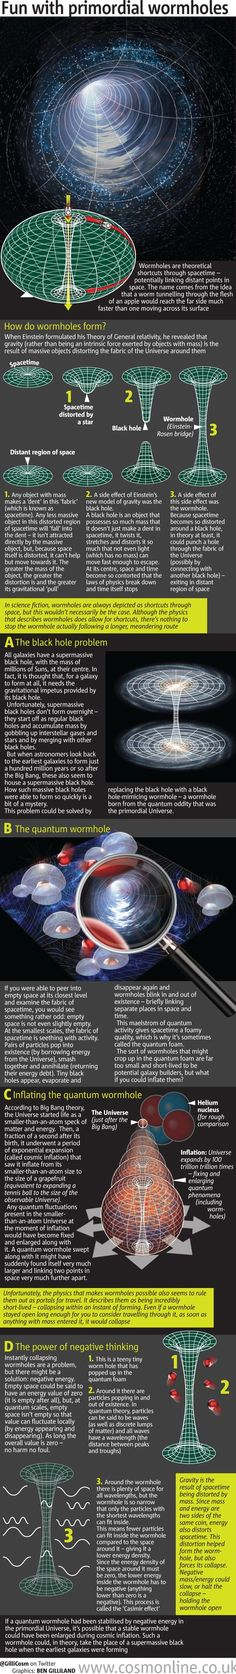 Black hole? Or wormhole in disguise? | CosmOnline